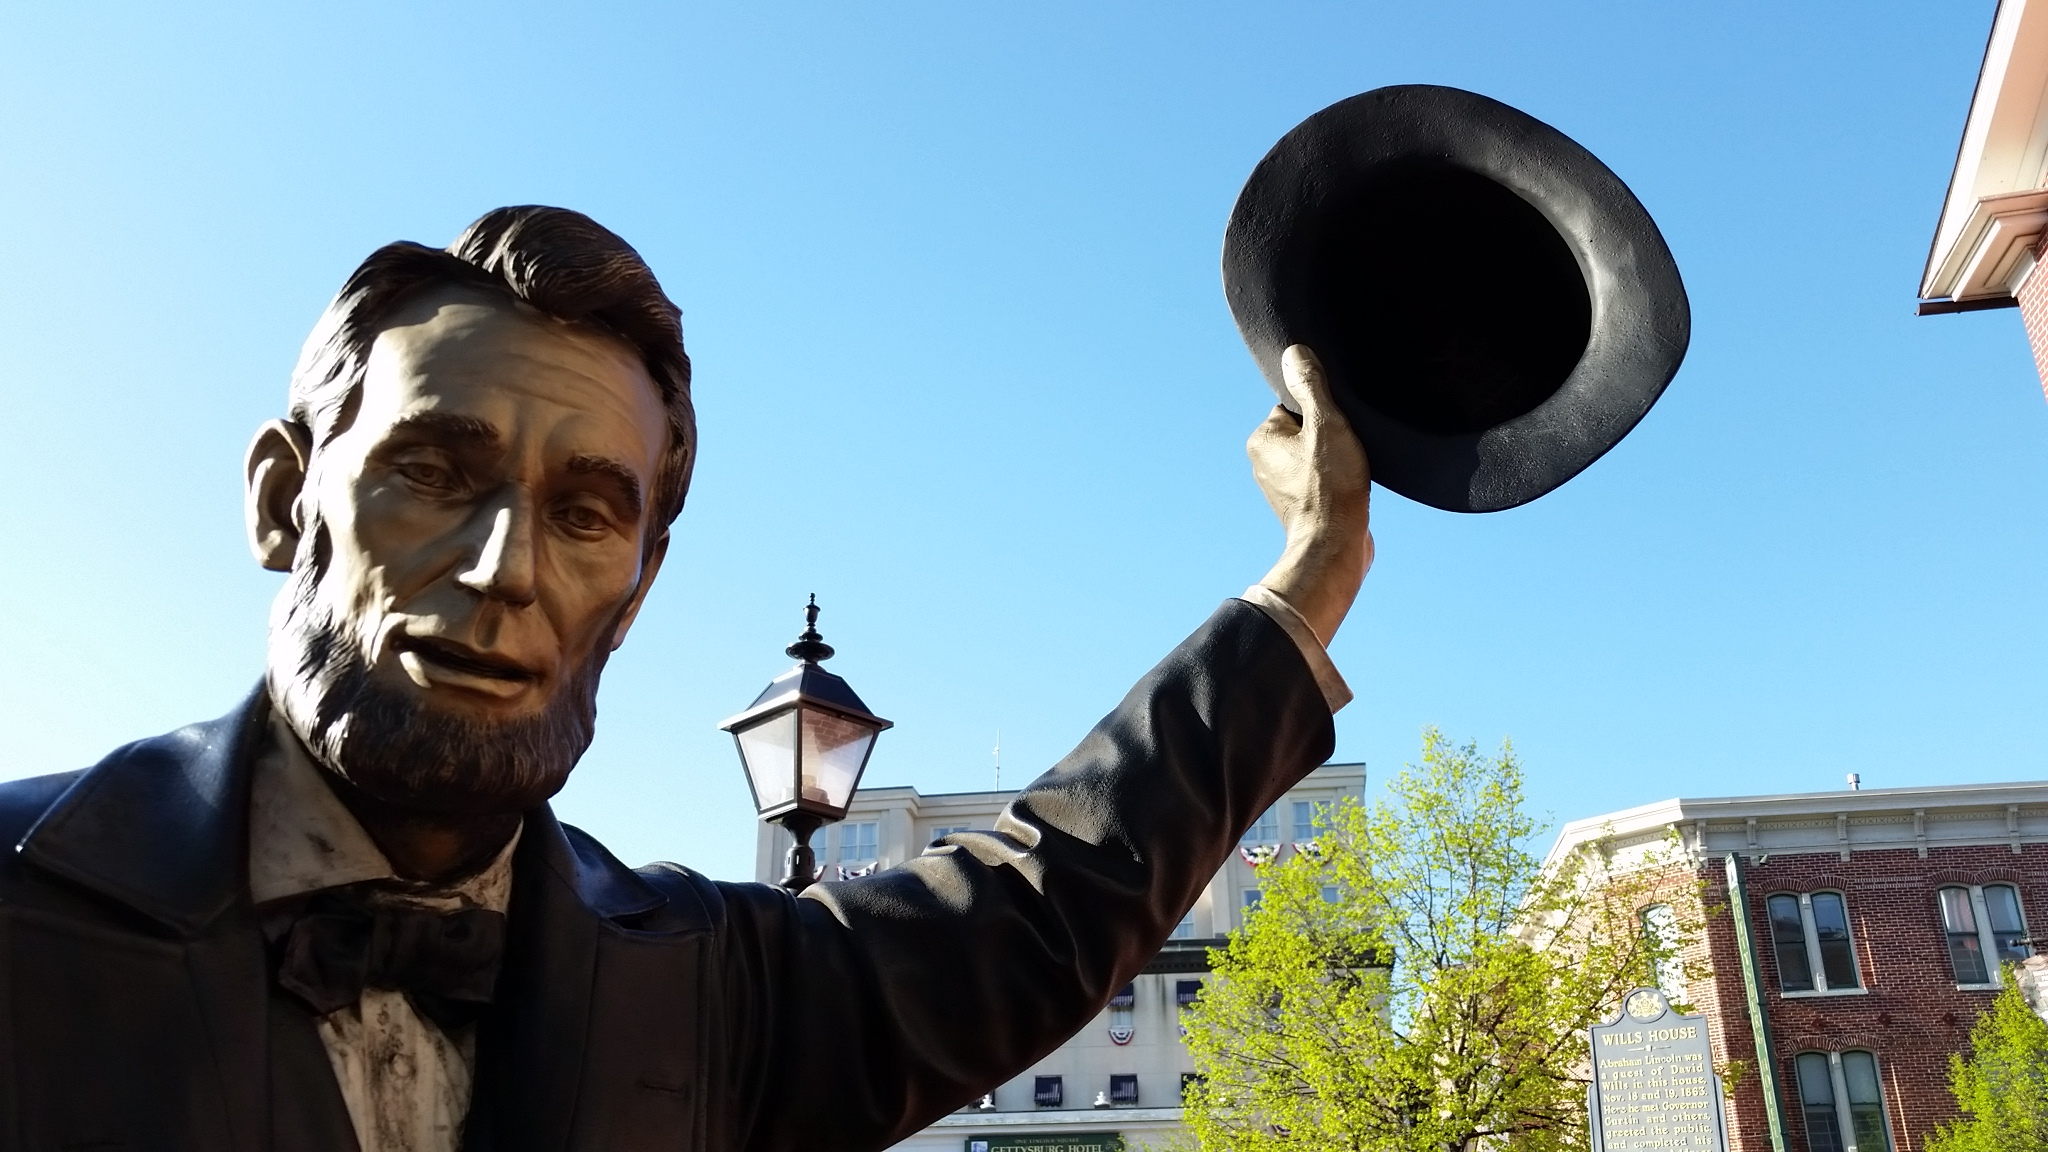 Statue of Abraham Lincoln at Lincoln Square in Gettysburg, Pennsylvania